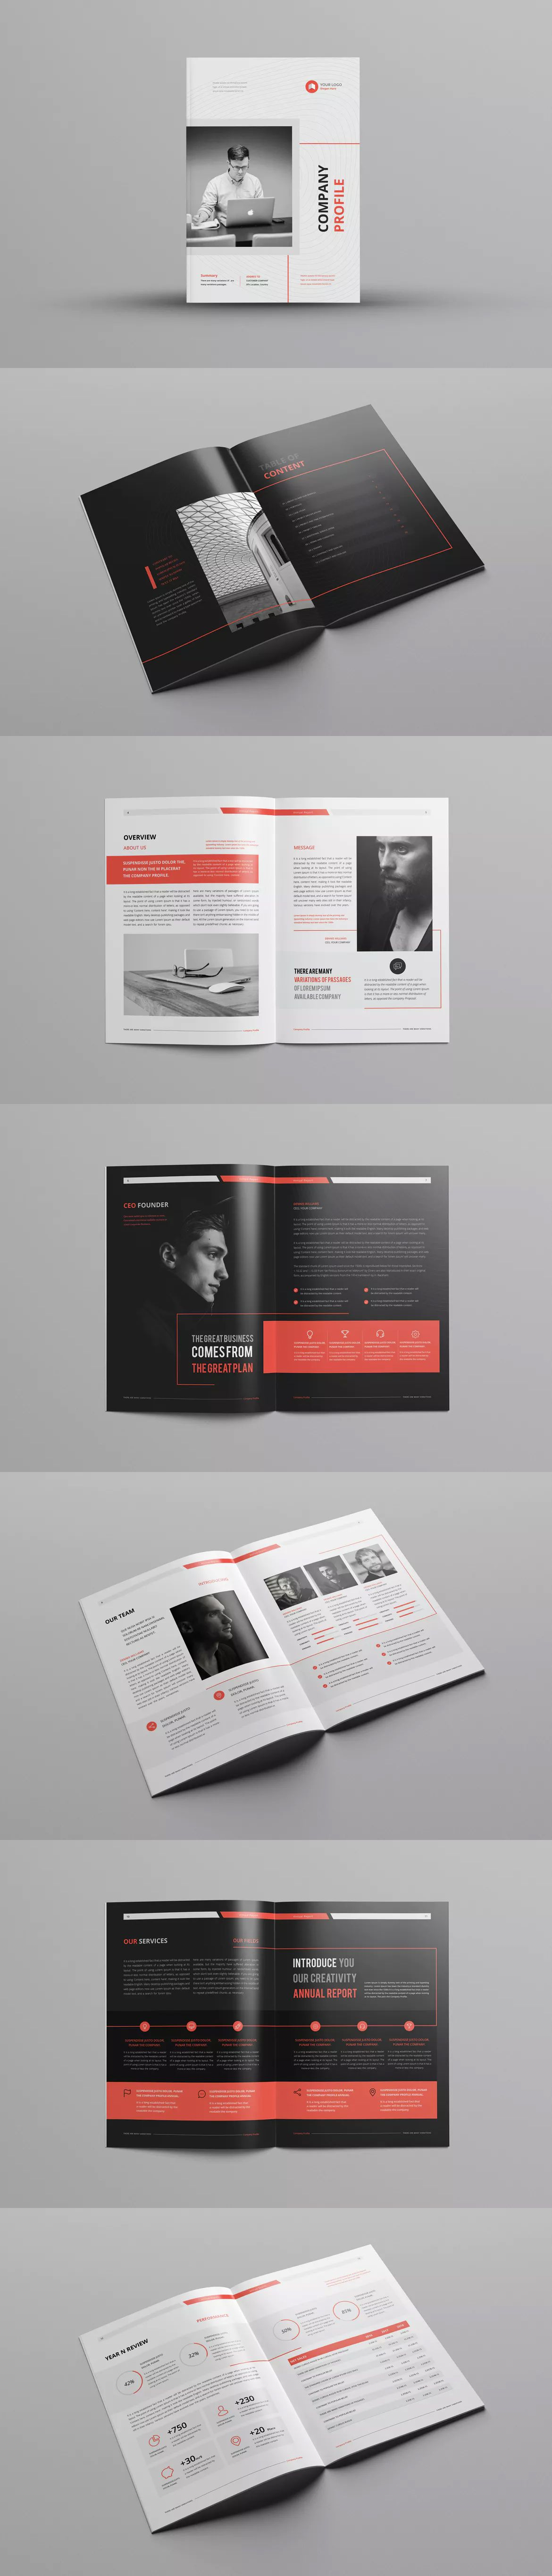 Company Profile Template Indesign Indd A4 Company Profile Design